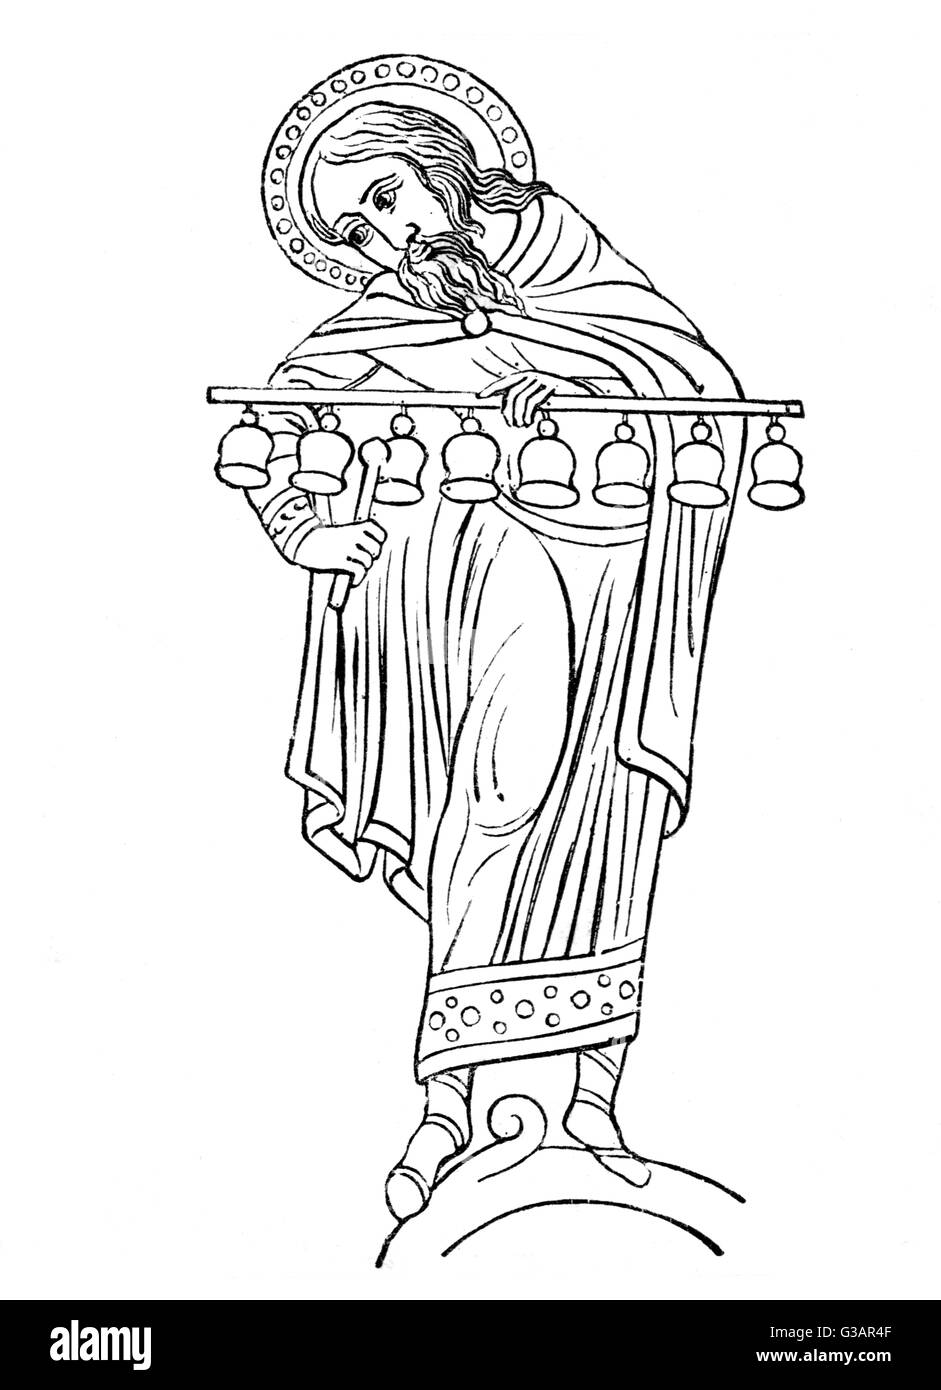 A halo-ed figure(possibly King David)plays a row of eight bells. - Stock Image